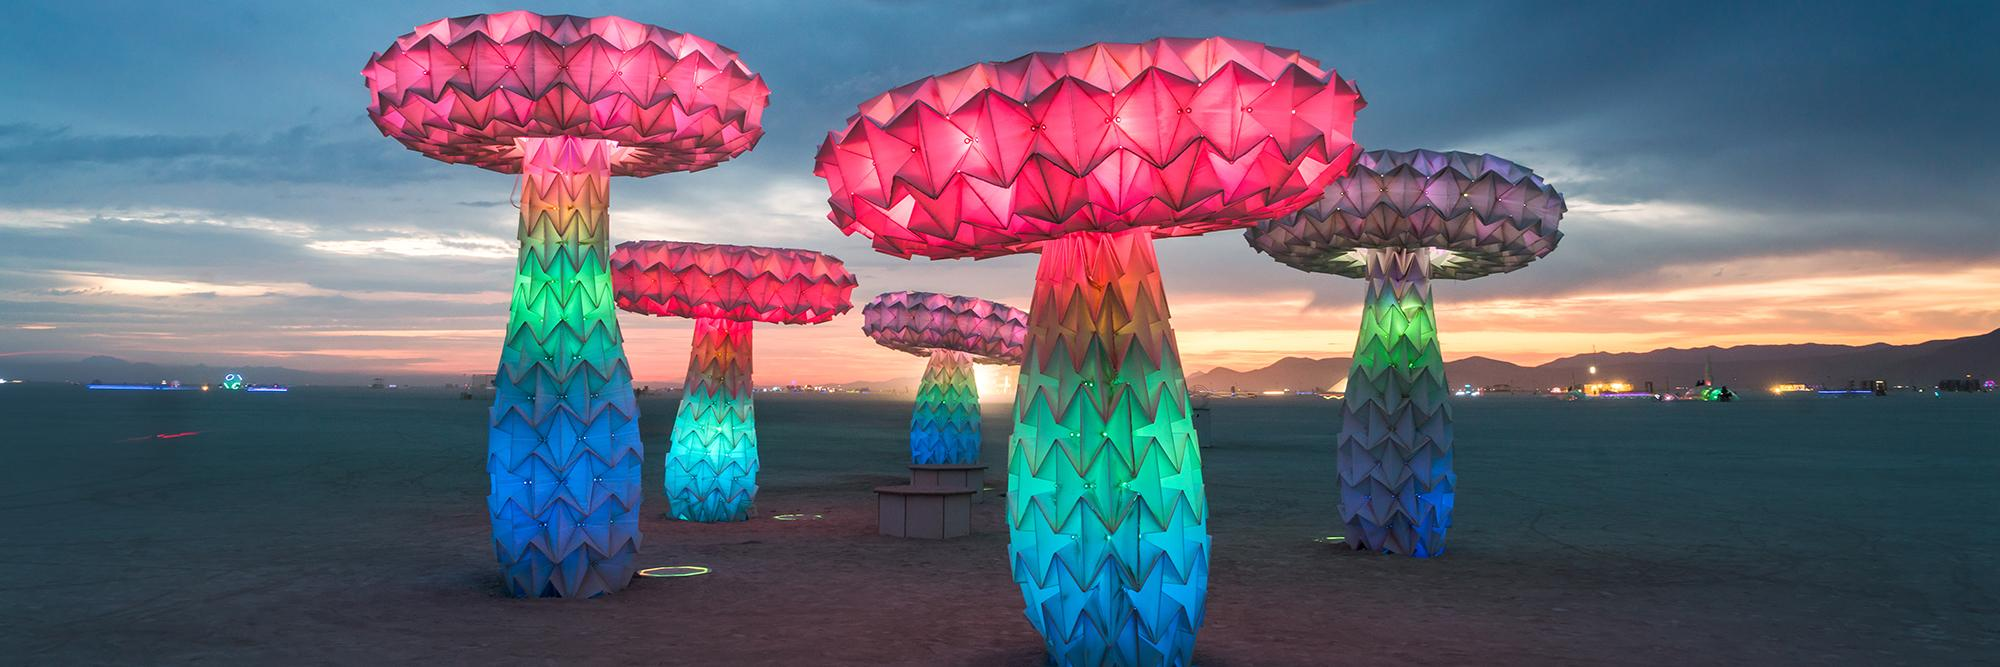 A photo of Shrumen Lumen, a faceted mushroom sculpture piece, installed in the desert at Burning Man 2017.